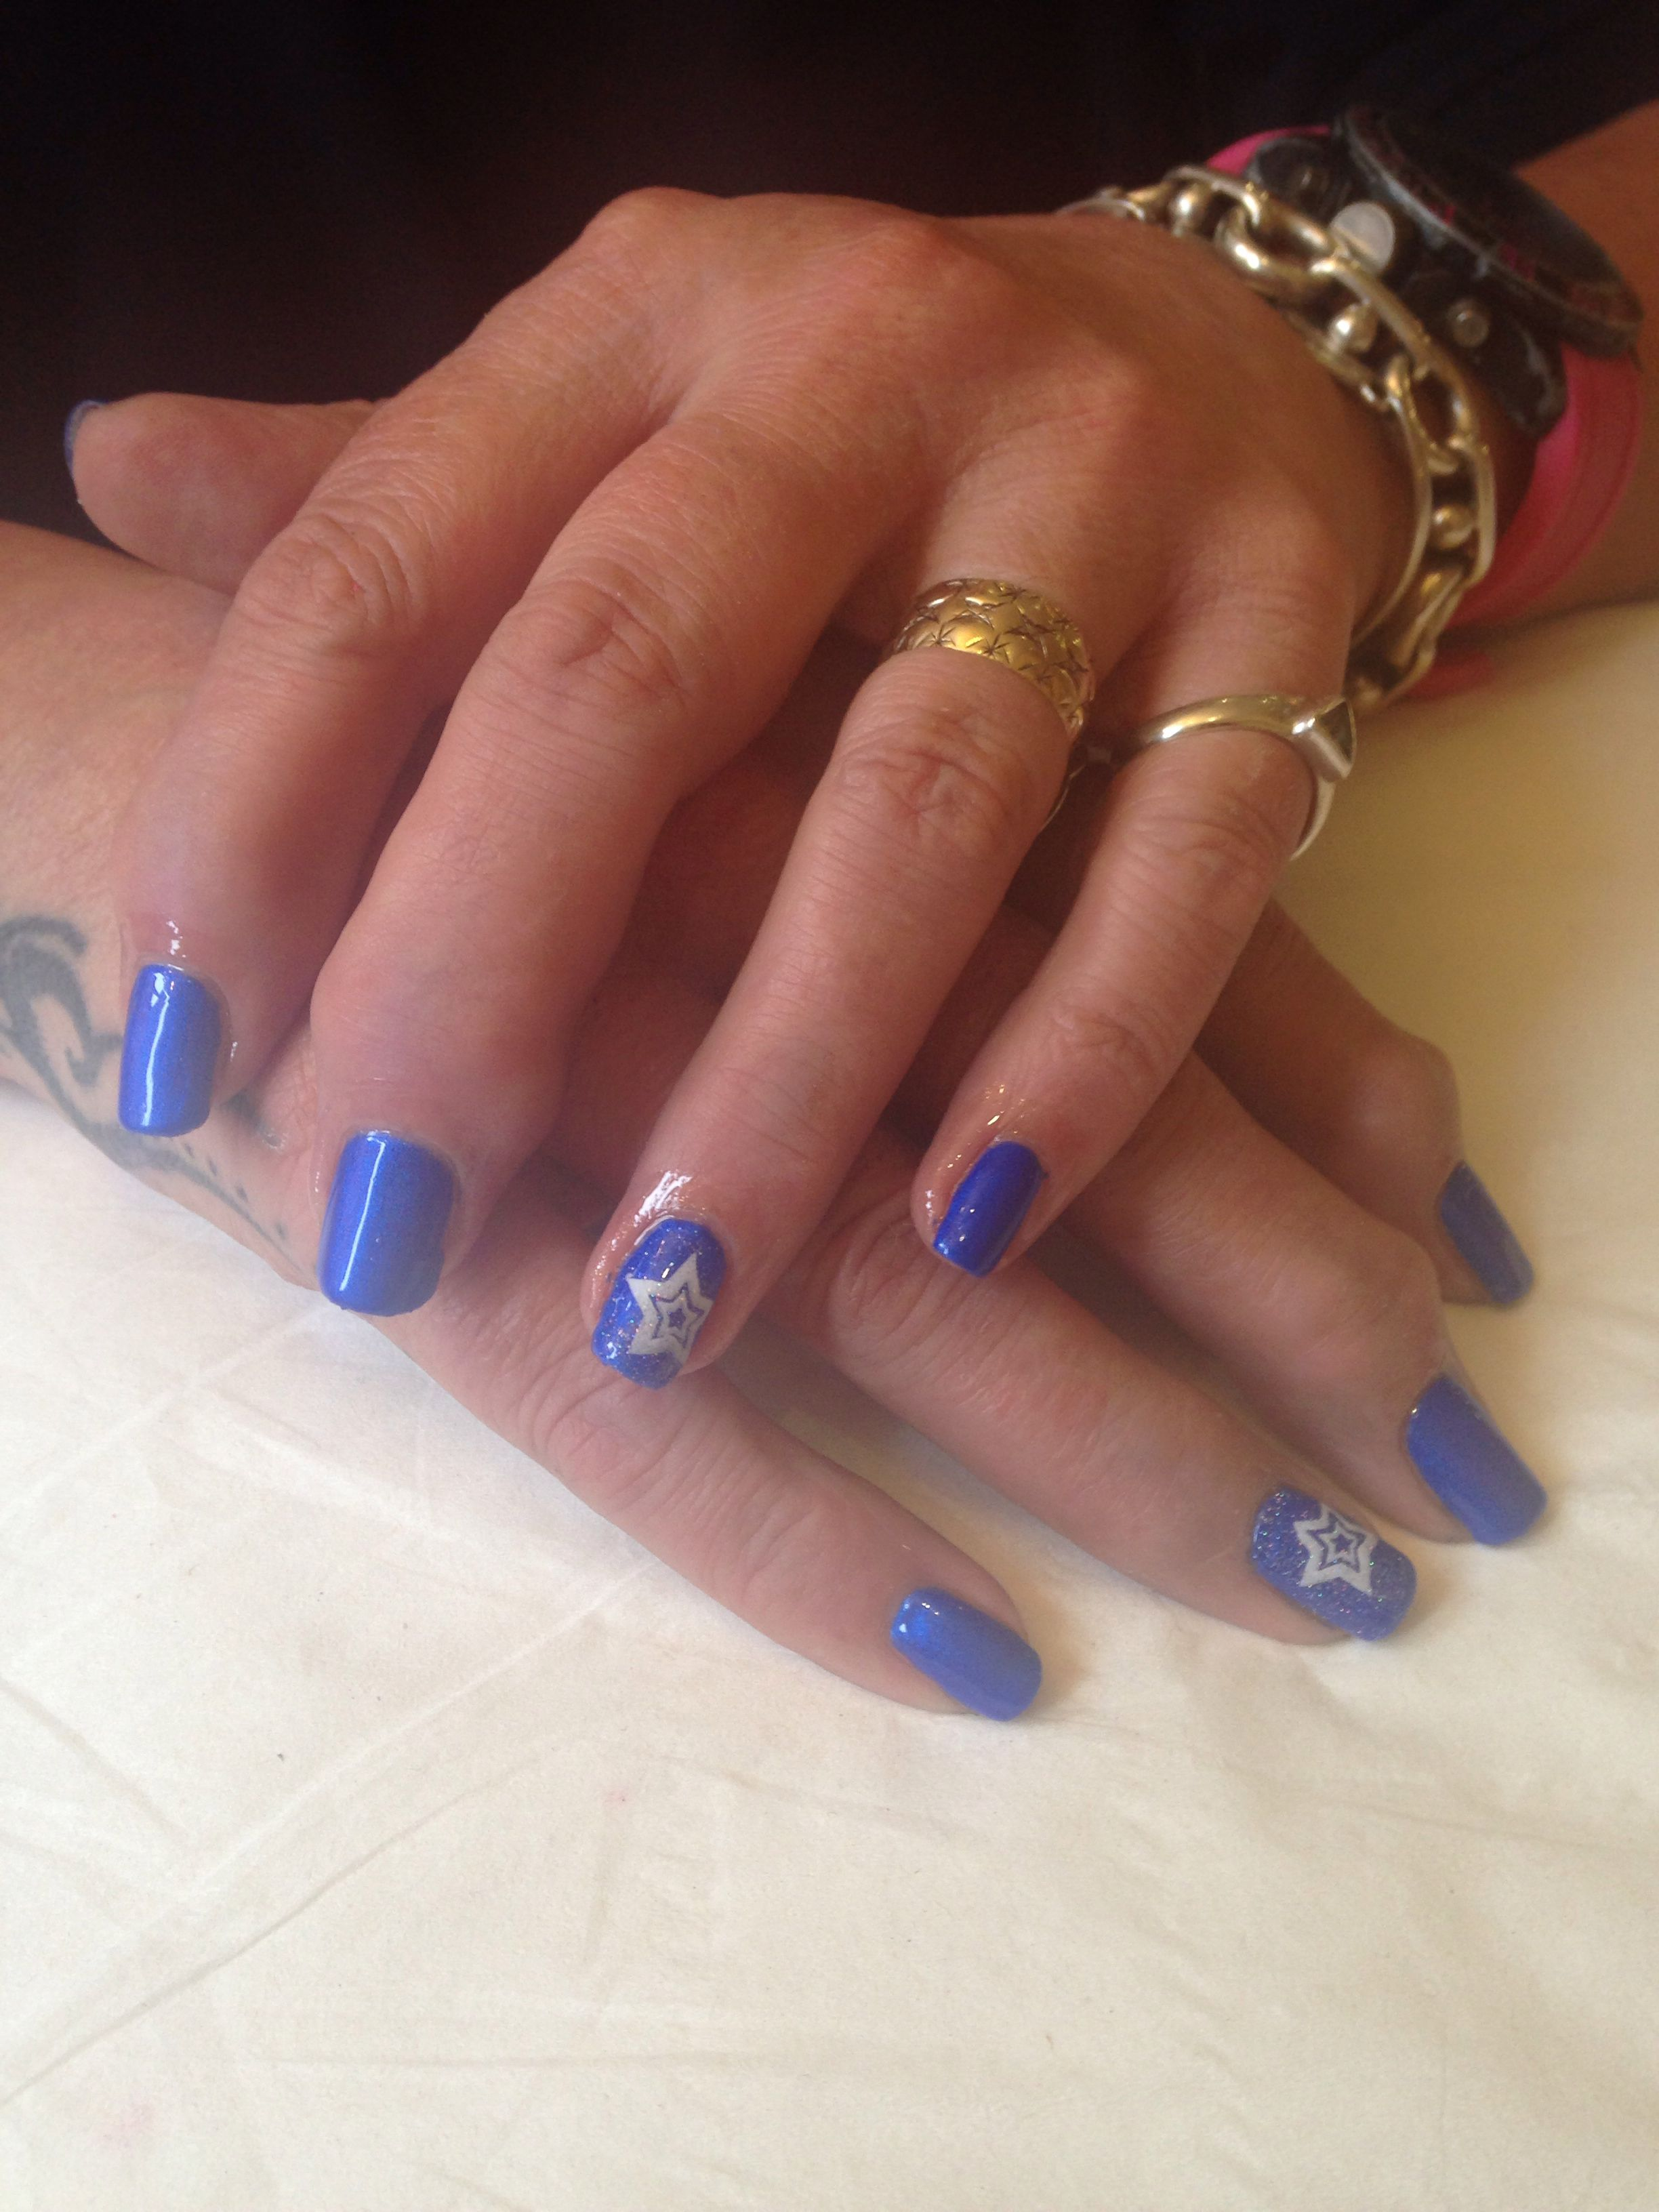 Royal blue with star detail